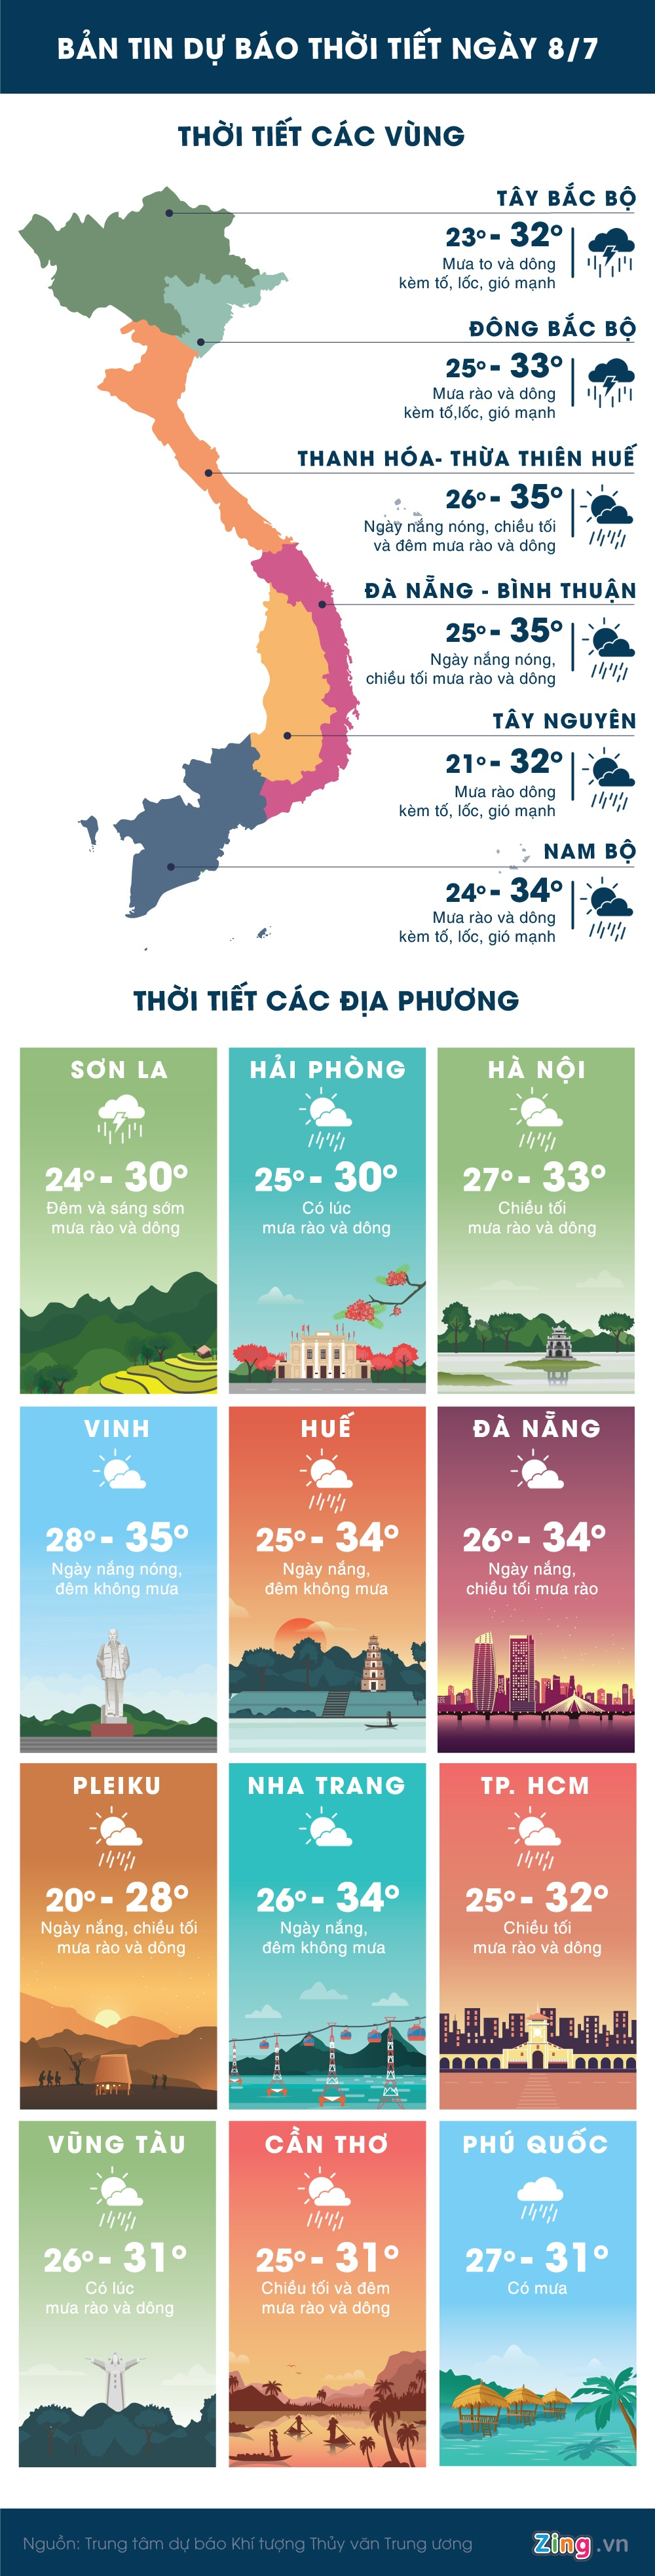 Ha Noi mua dong, gio manh ve chieu toi, nguy co ngap hinh anh 1